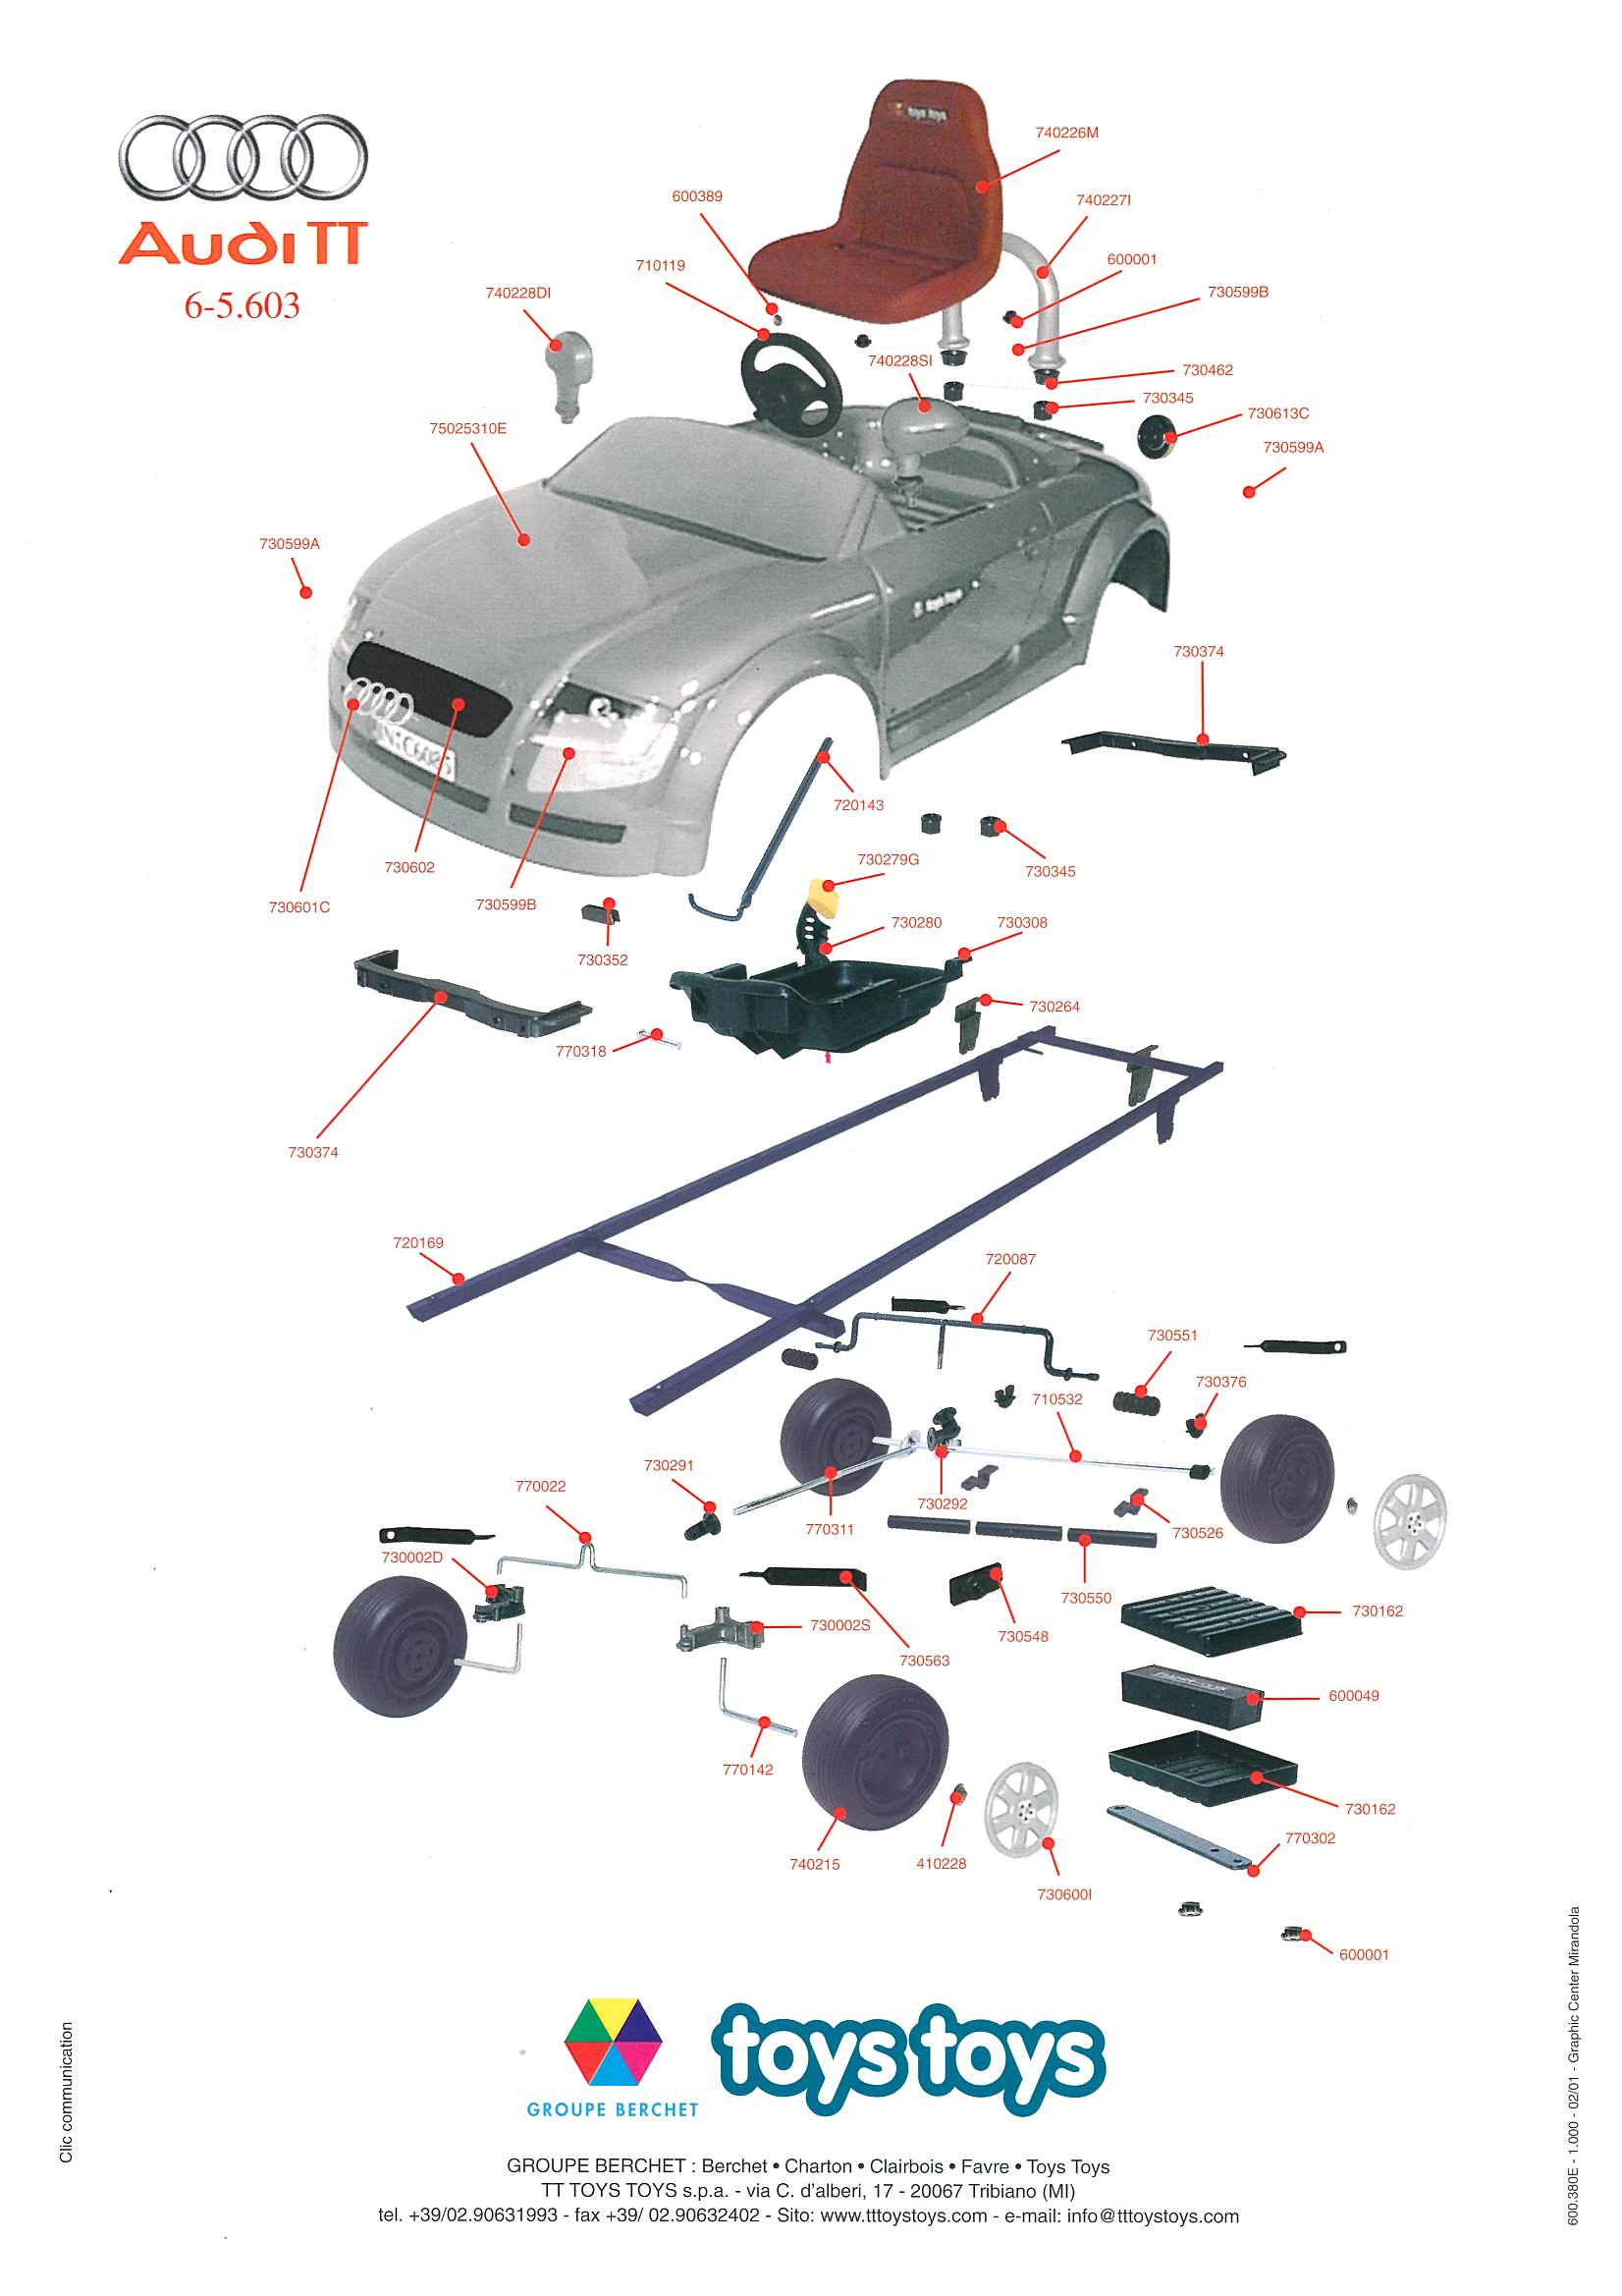 Electric Motor Diagram For Kids Vwvortex The Cutaway Exploded View And Other Such